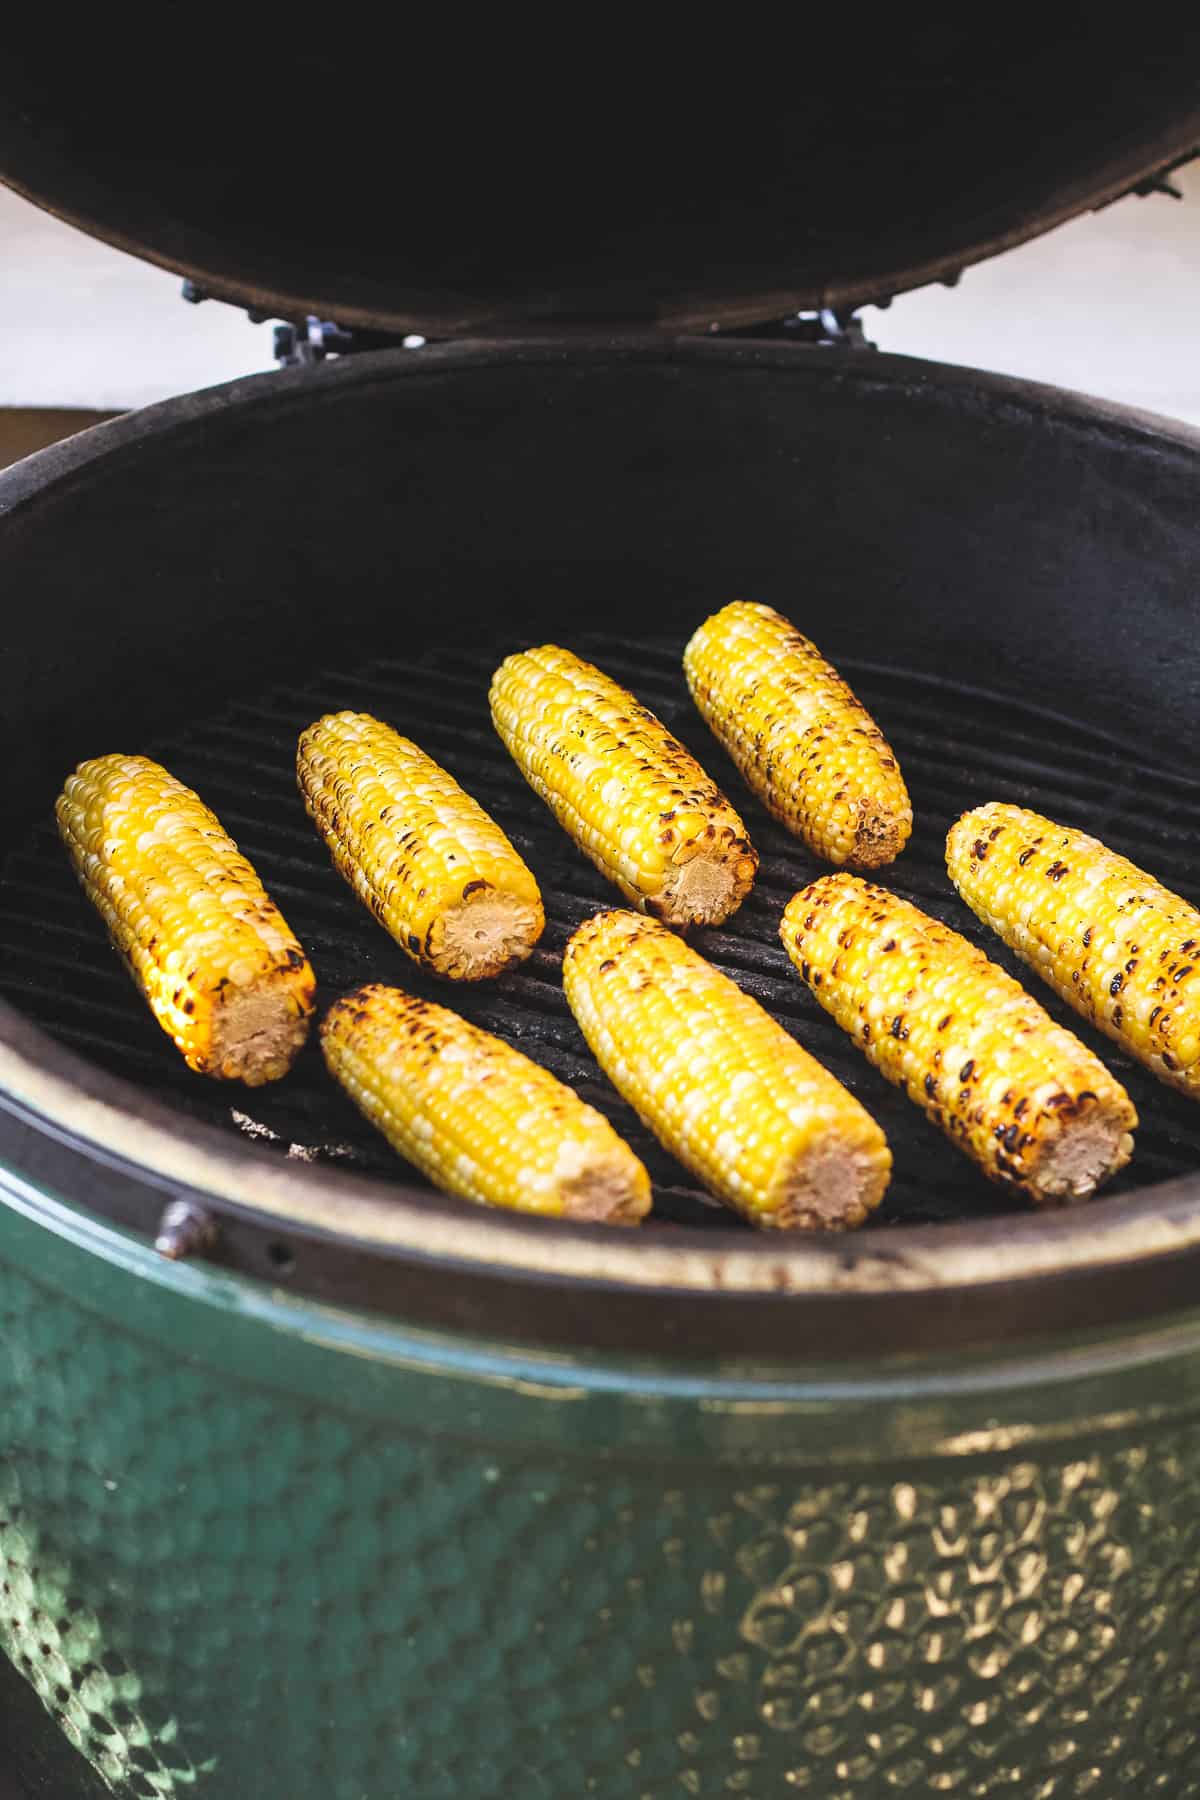 The BGE with the corn grilling.